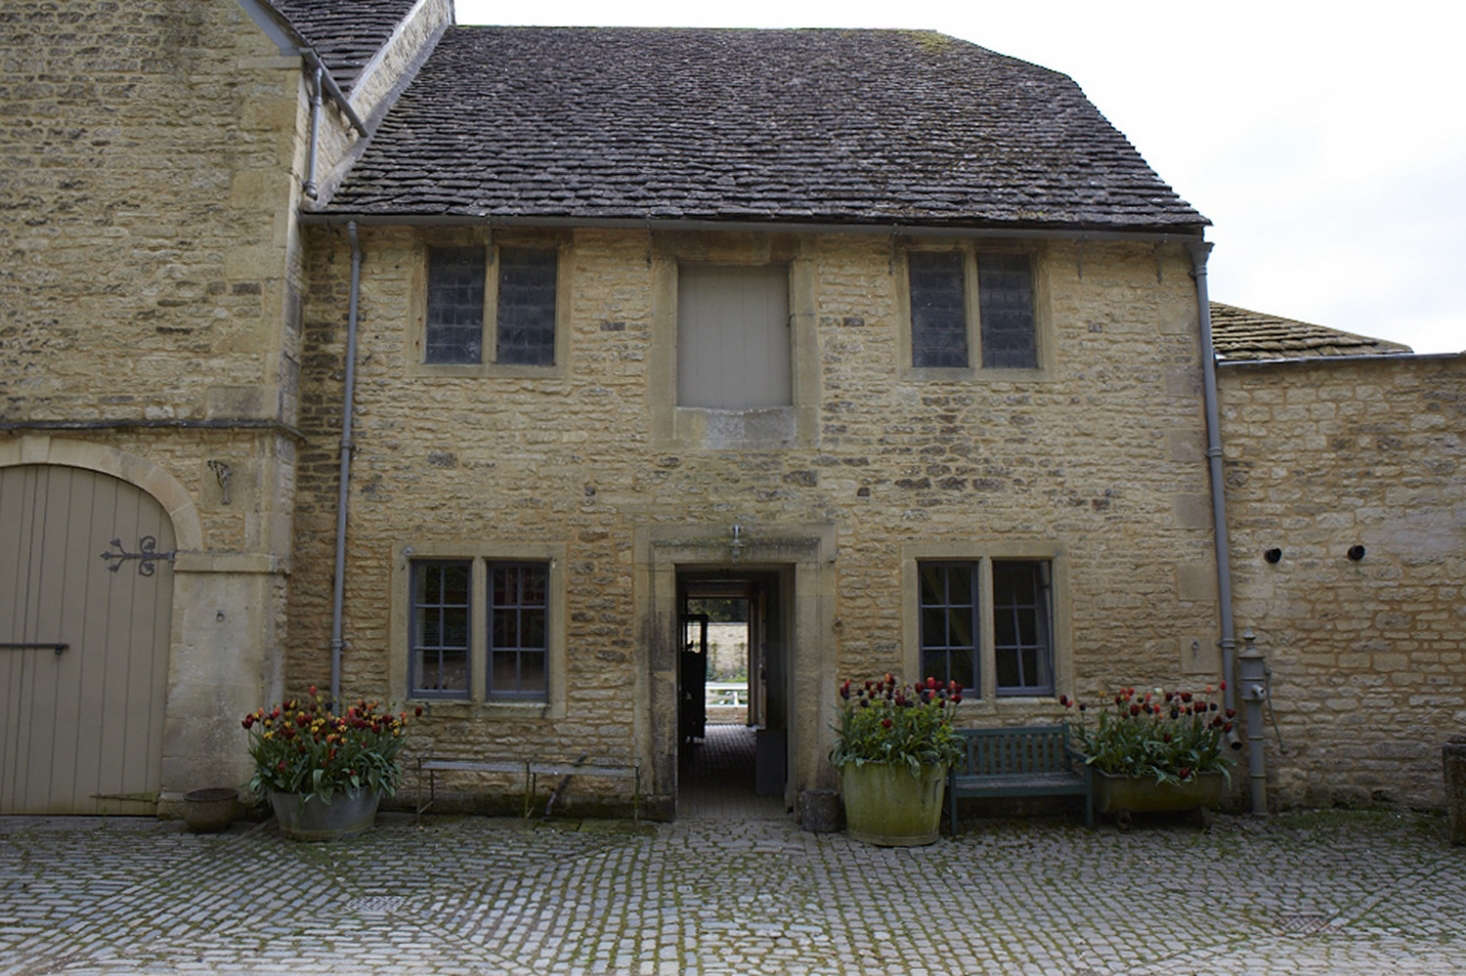 The exterior of the stables and coach house, dating from the 1760s.